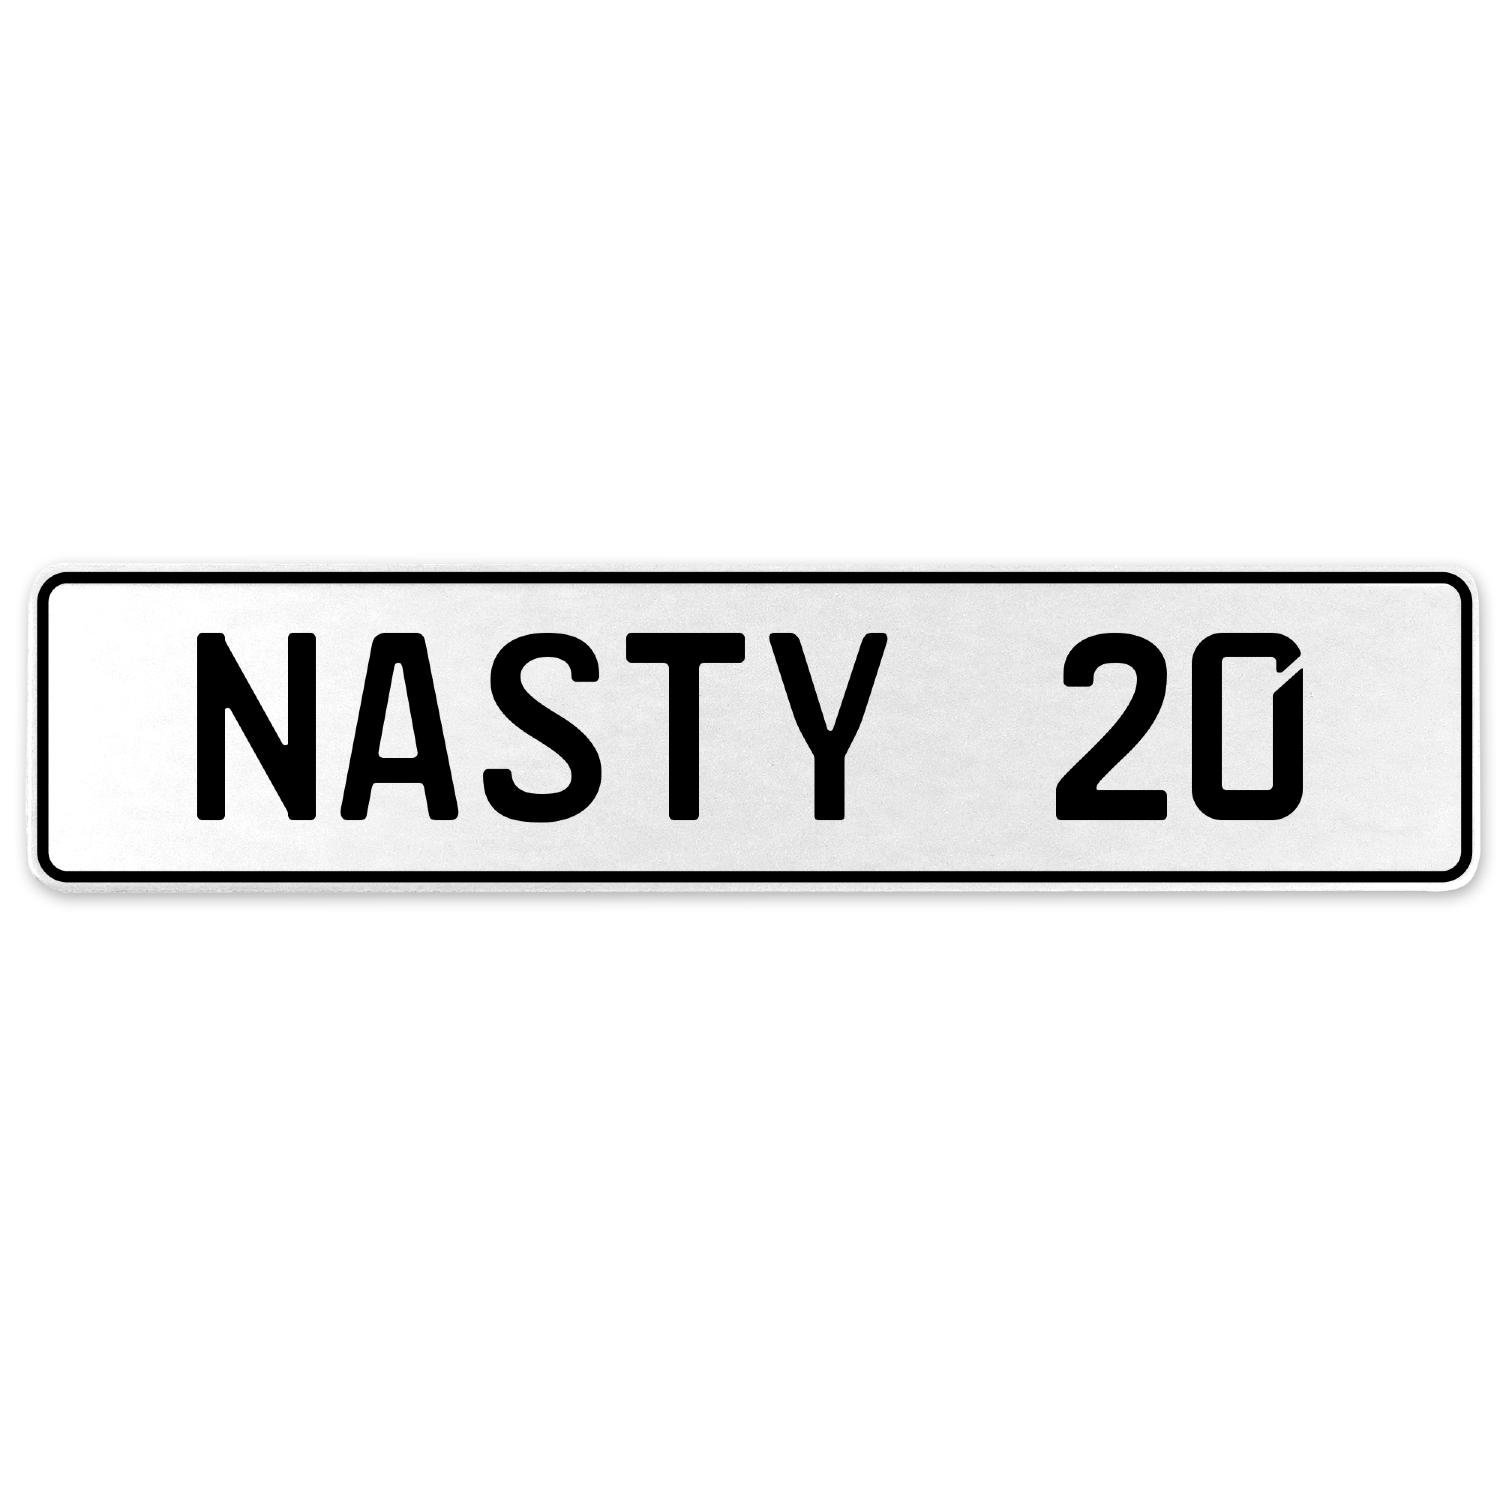 Vintage Parts 556894 Nasty 20 White Stamped Aluminum European License Plate